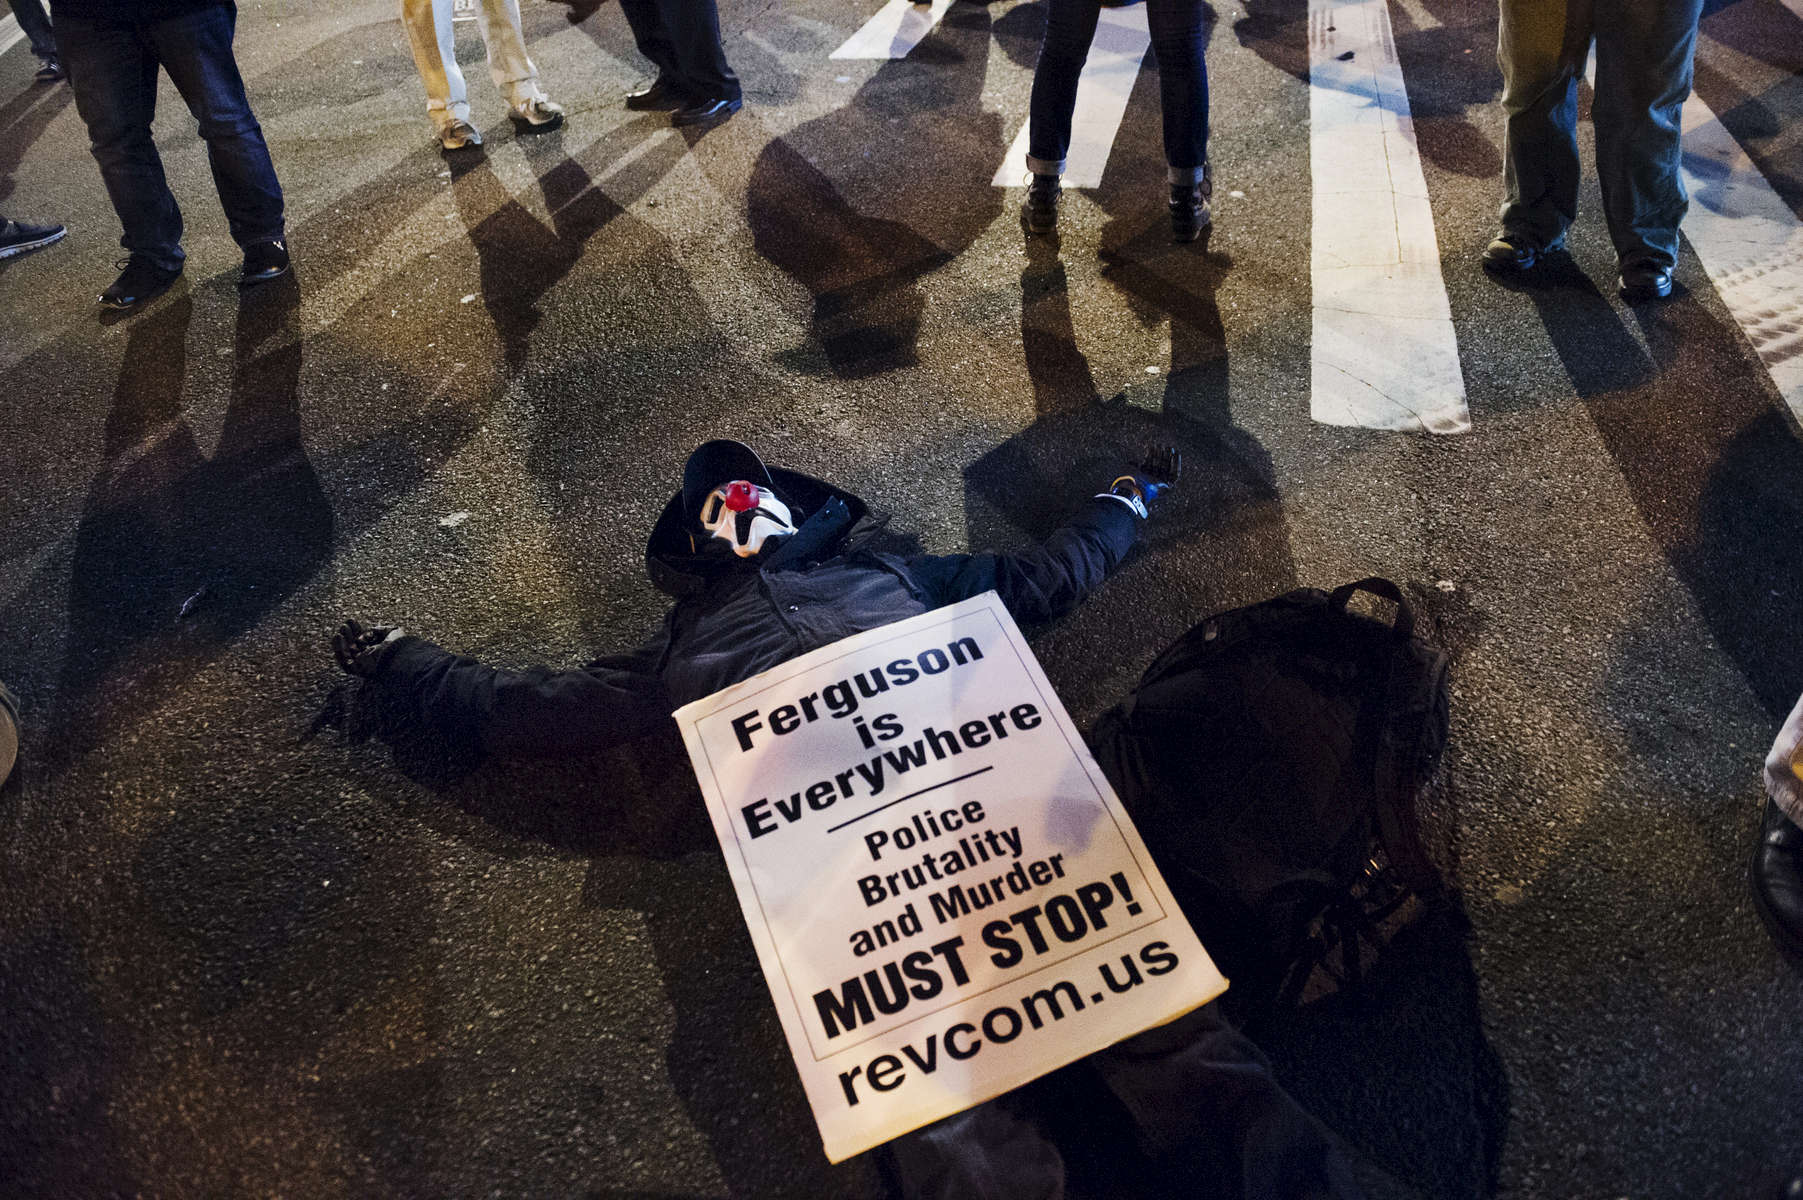 NEW YORK CITY, NY- DEC 4: A masked protestor joins in a die-in at the intersection in front of the Barclays Center in Brooklyn on Dec. 4, 2014 in Brooklyn, NY.   The group of demonstrators took to the streets of New York, a day after a Staten Island grand jury declined to bring charges in the casze of Eric Garner, beginning their march in New York's Foley Square closing down the Brooklyn and Manhattan Bridges as they crossed over.